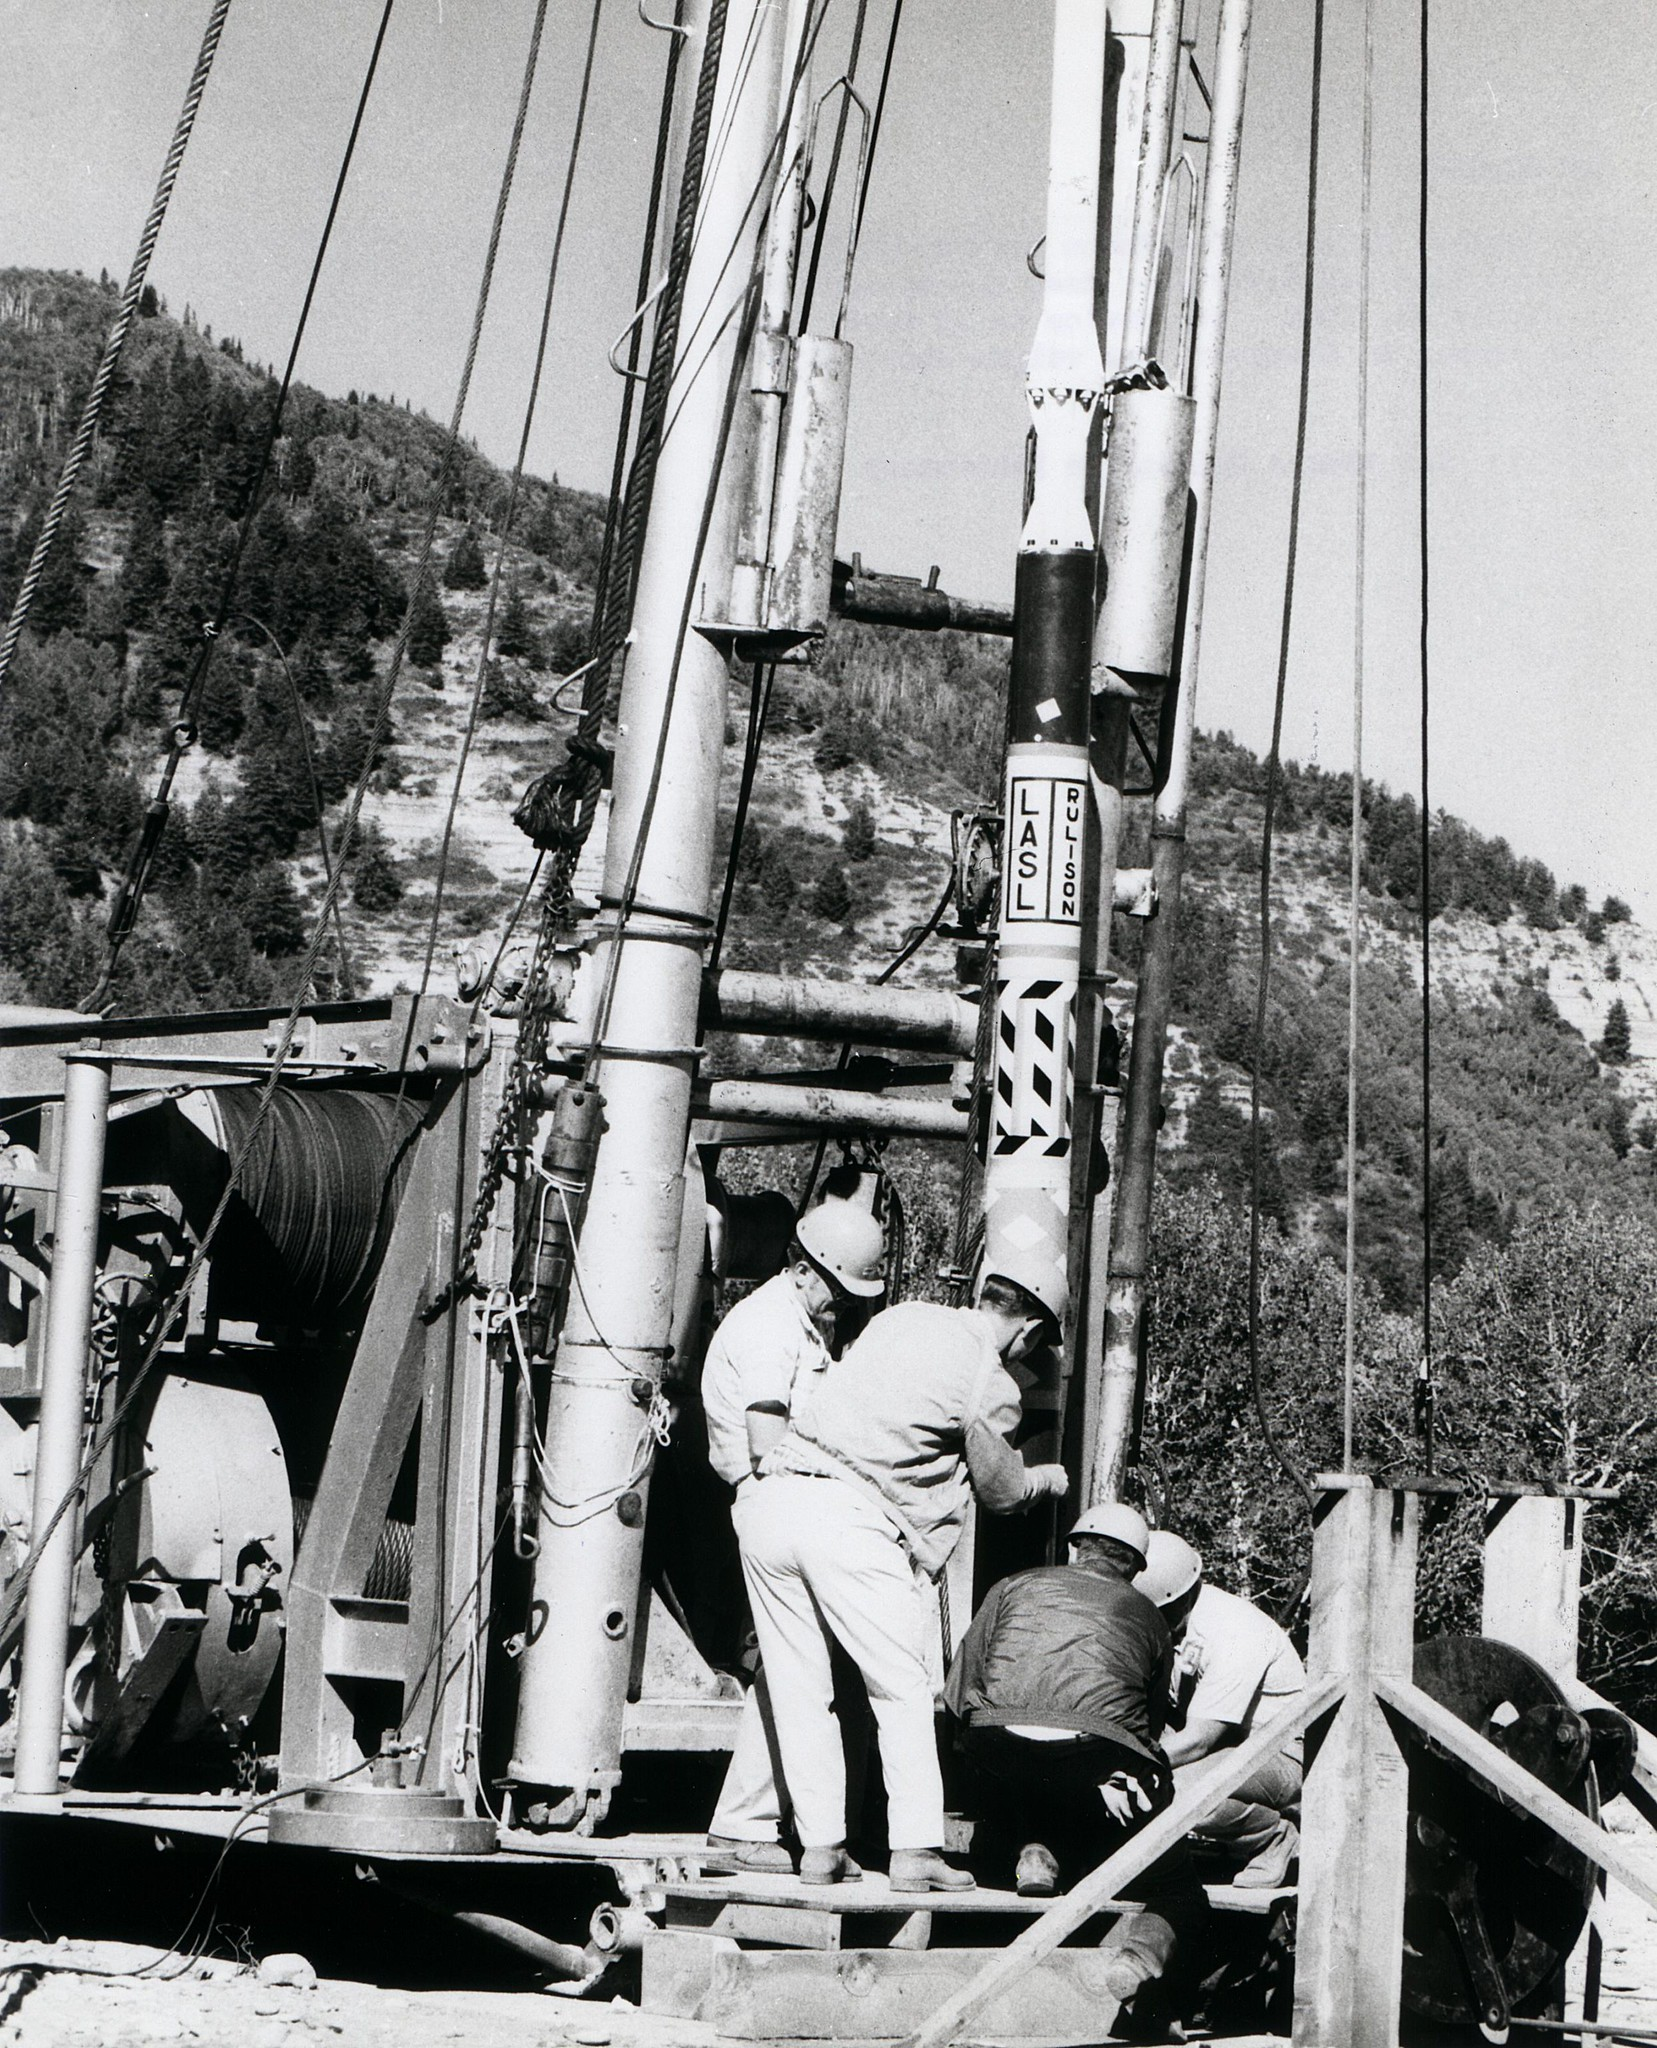 Black and white image of male-presenting workers in hardhats and coveralls working with a crane and many steel cables in a mountain landscape.